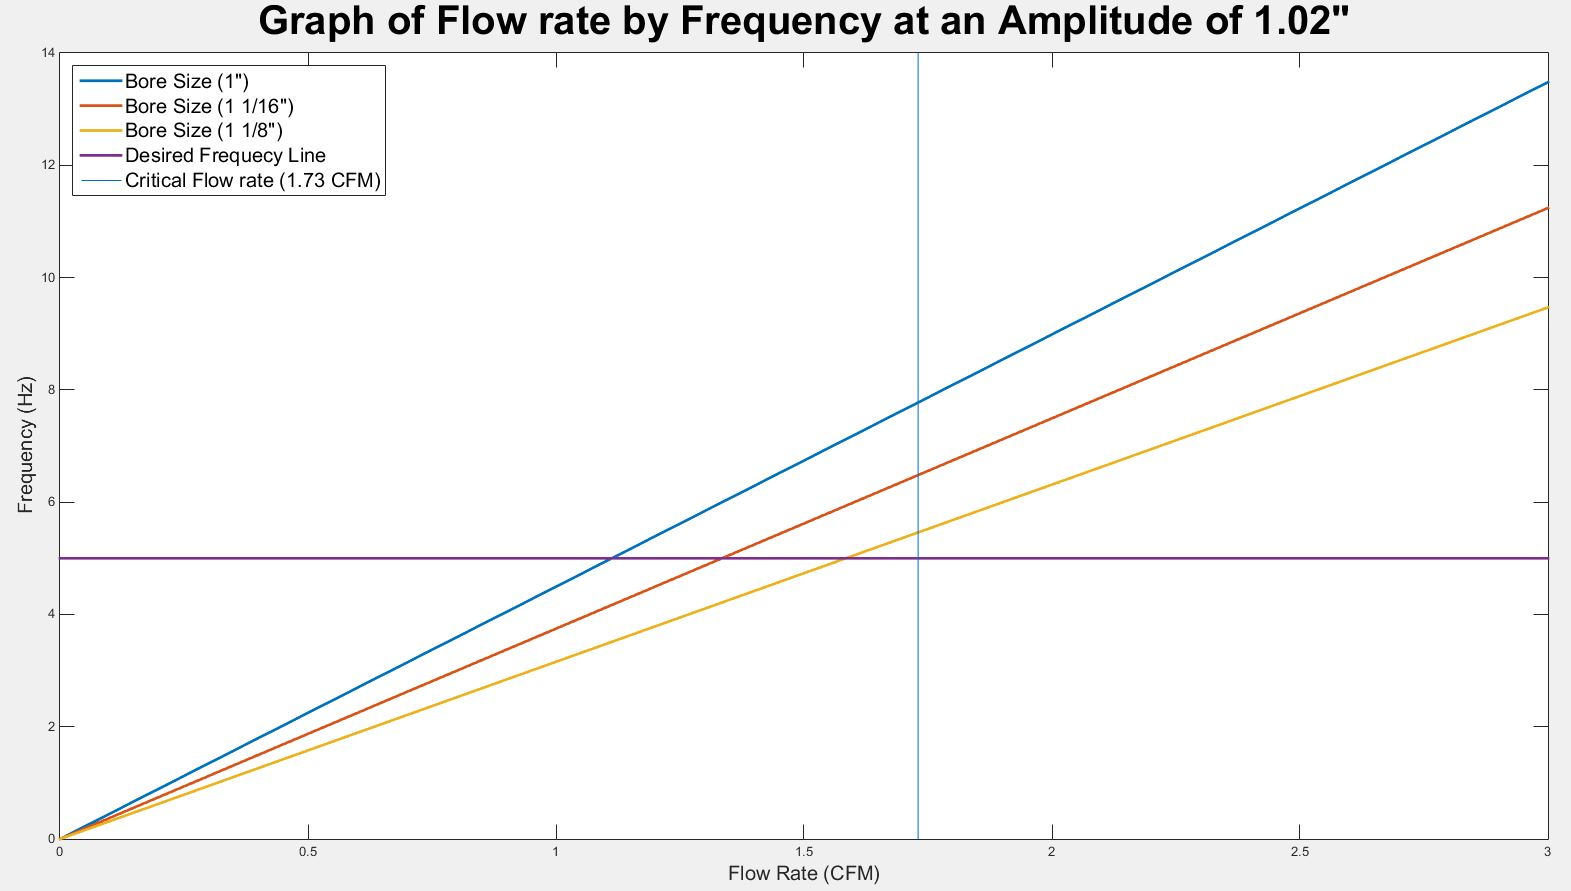 public/Preliminary Detailed Design Documents/P16103_flow rate graph_Amplitude_1.02.JPG